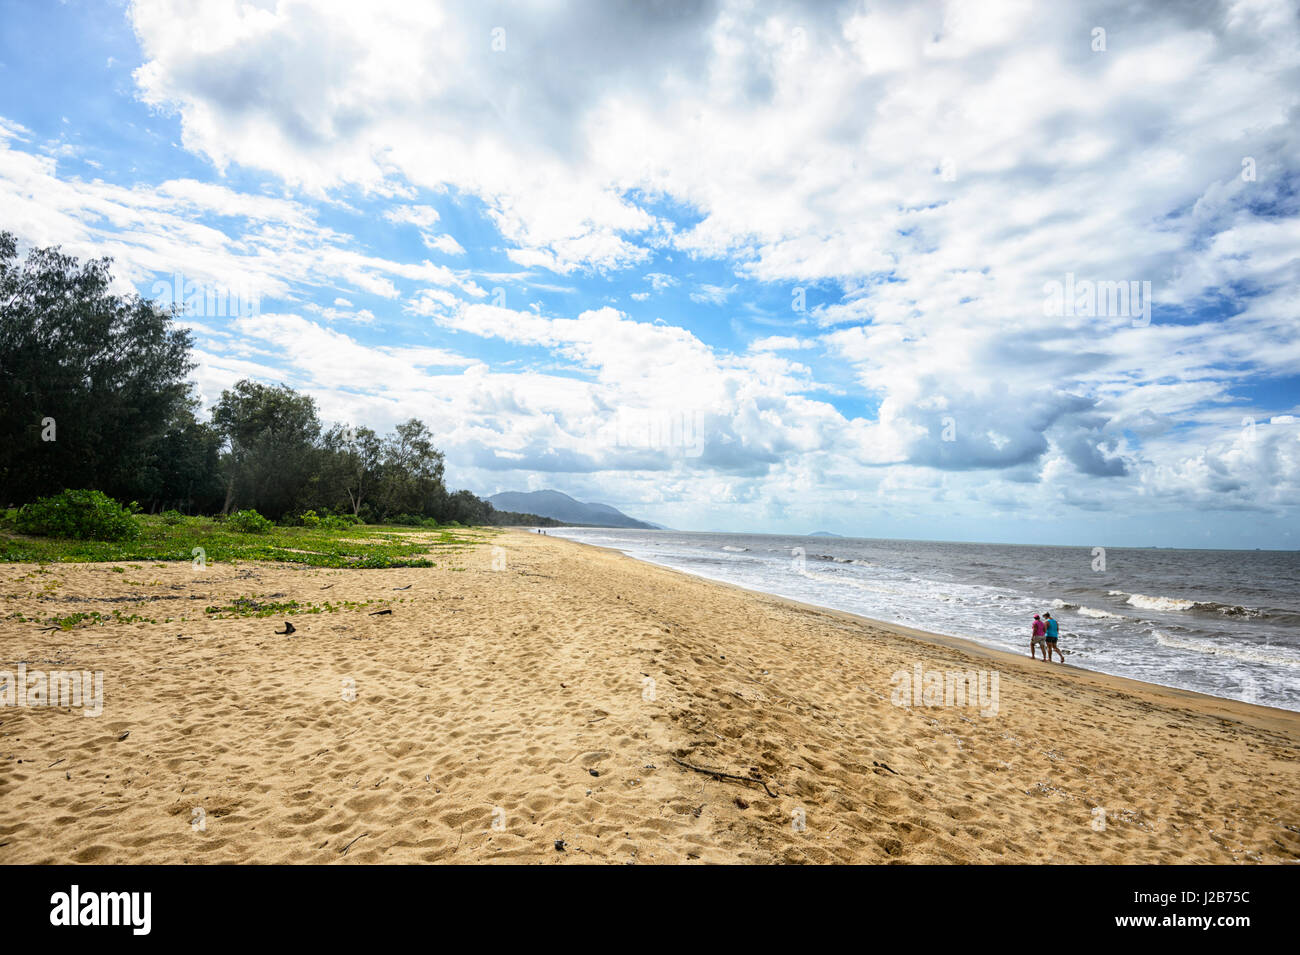 Zwei Personen zu Fuß am Strand von Far North Queensland, Queensland, FNQ, Bramston Beach, Australien Stockbild